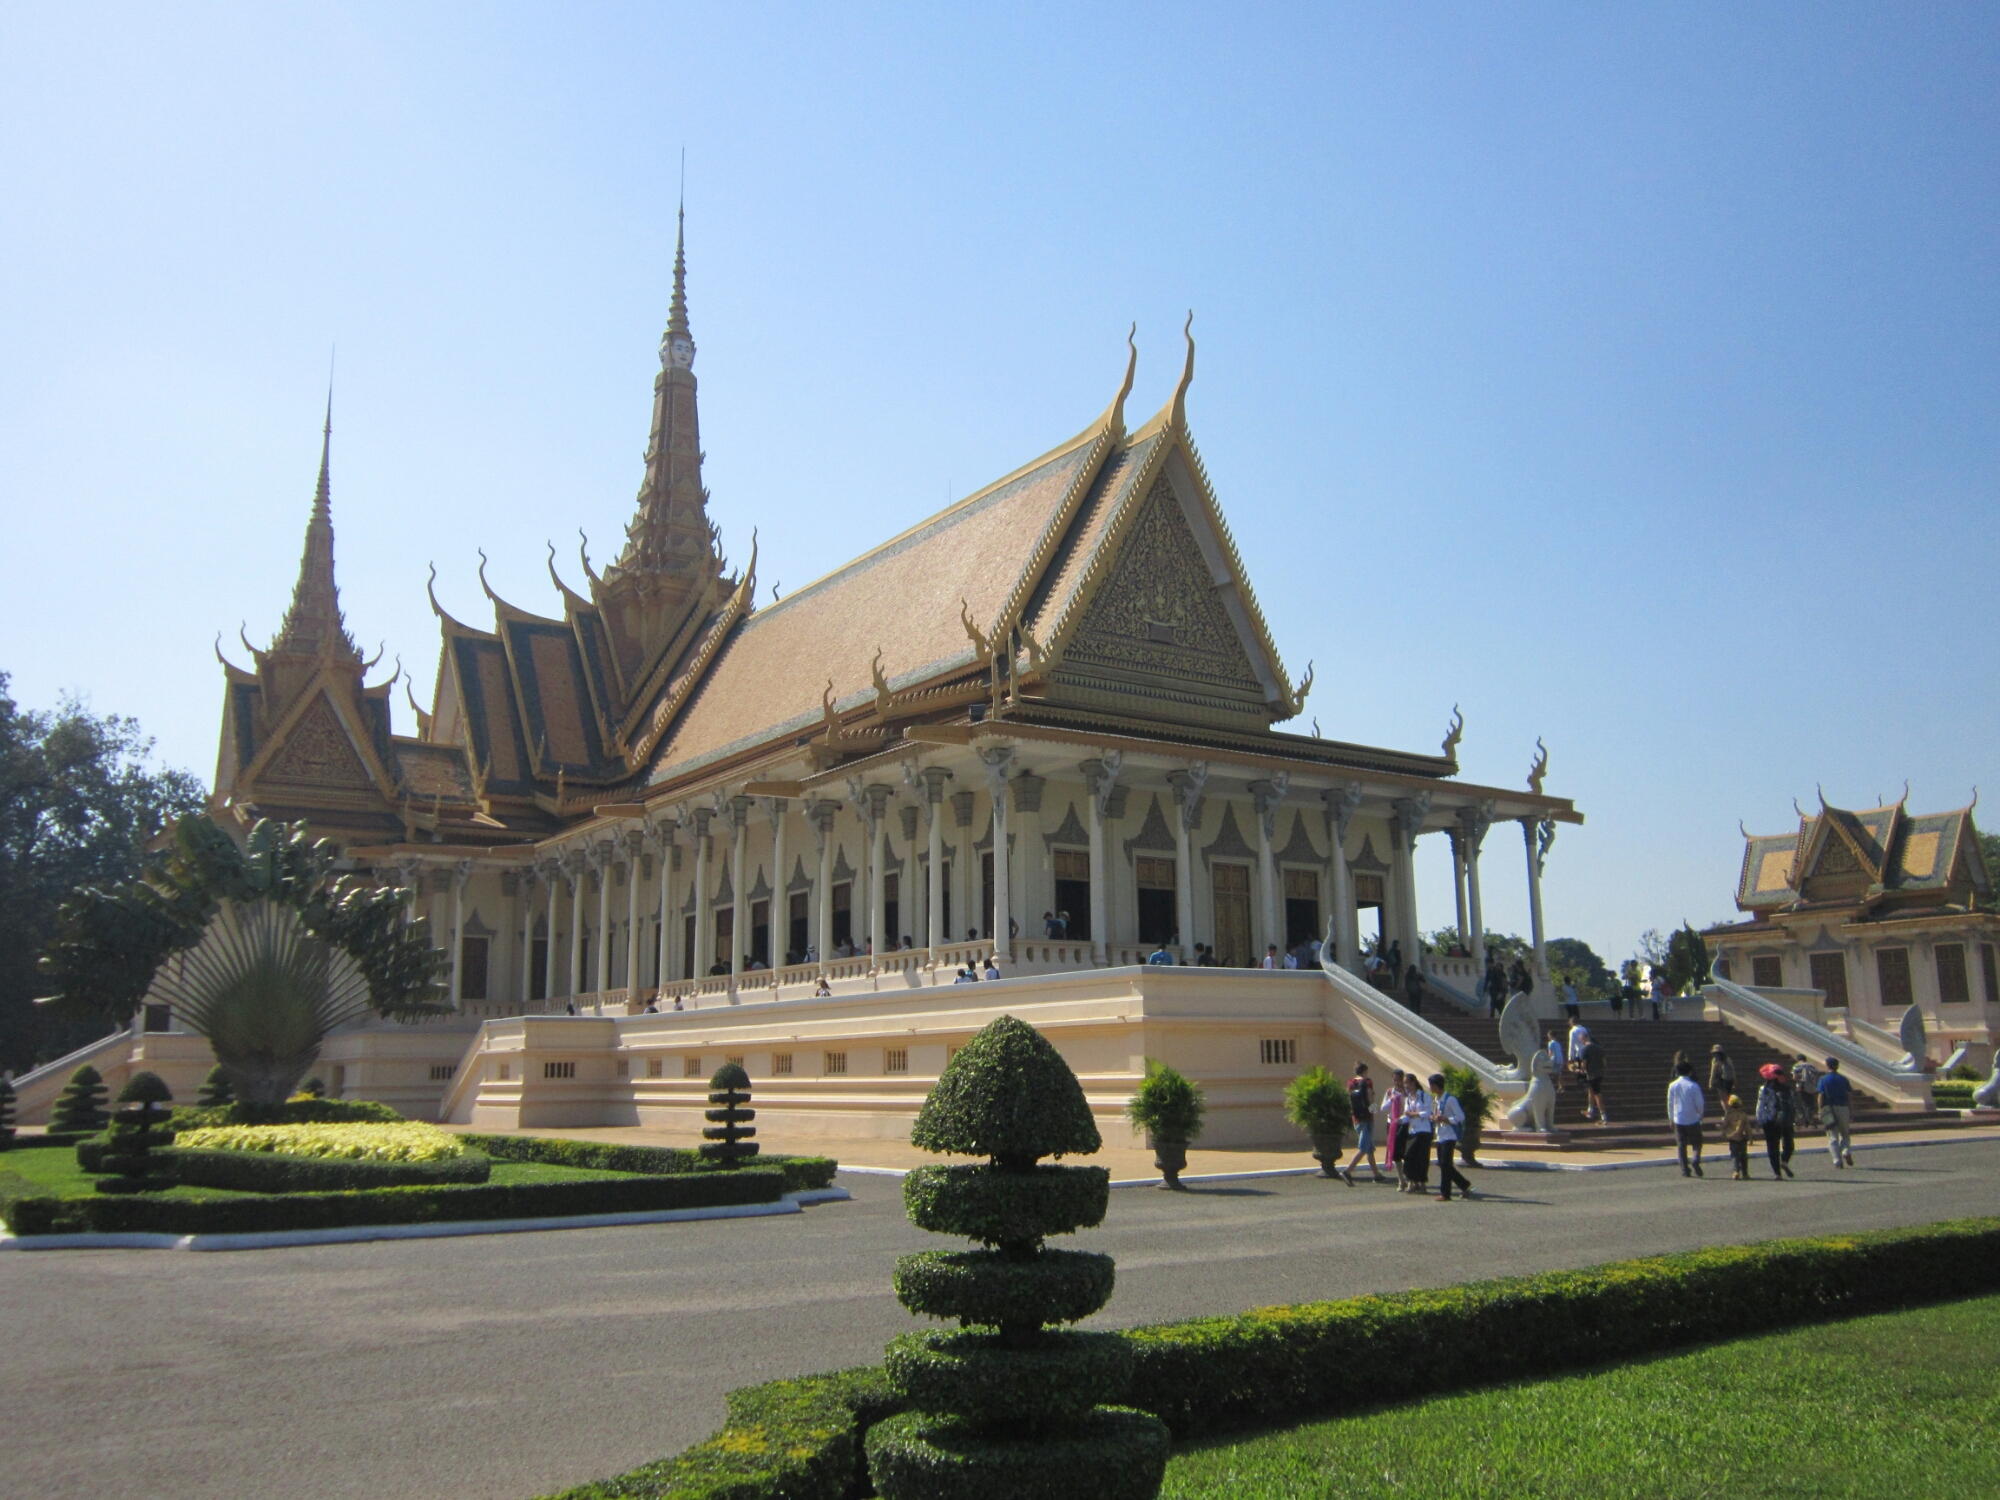 View of one of the buildings in the royal palace in Phnom Penh, Cambodia.